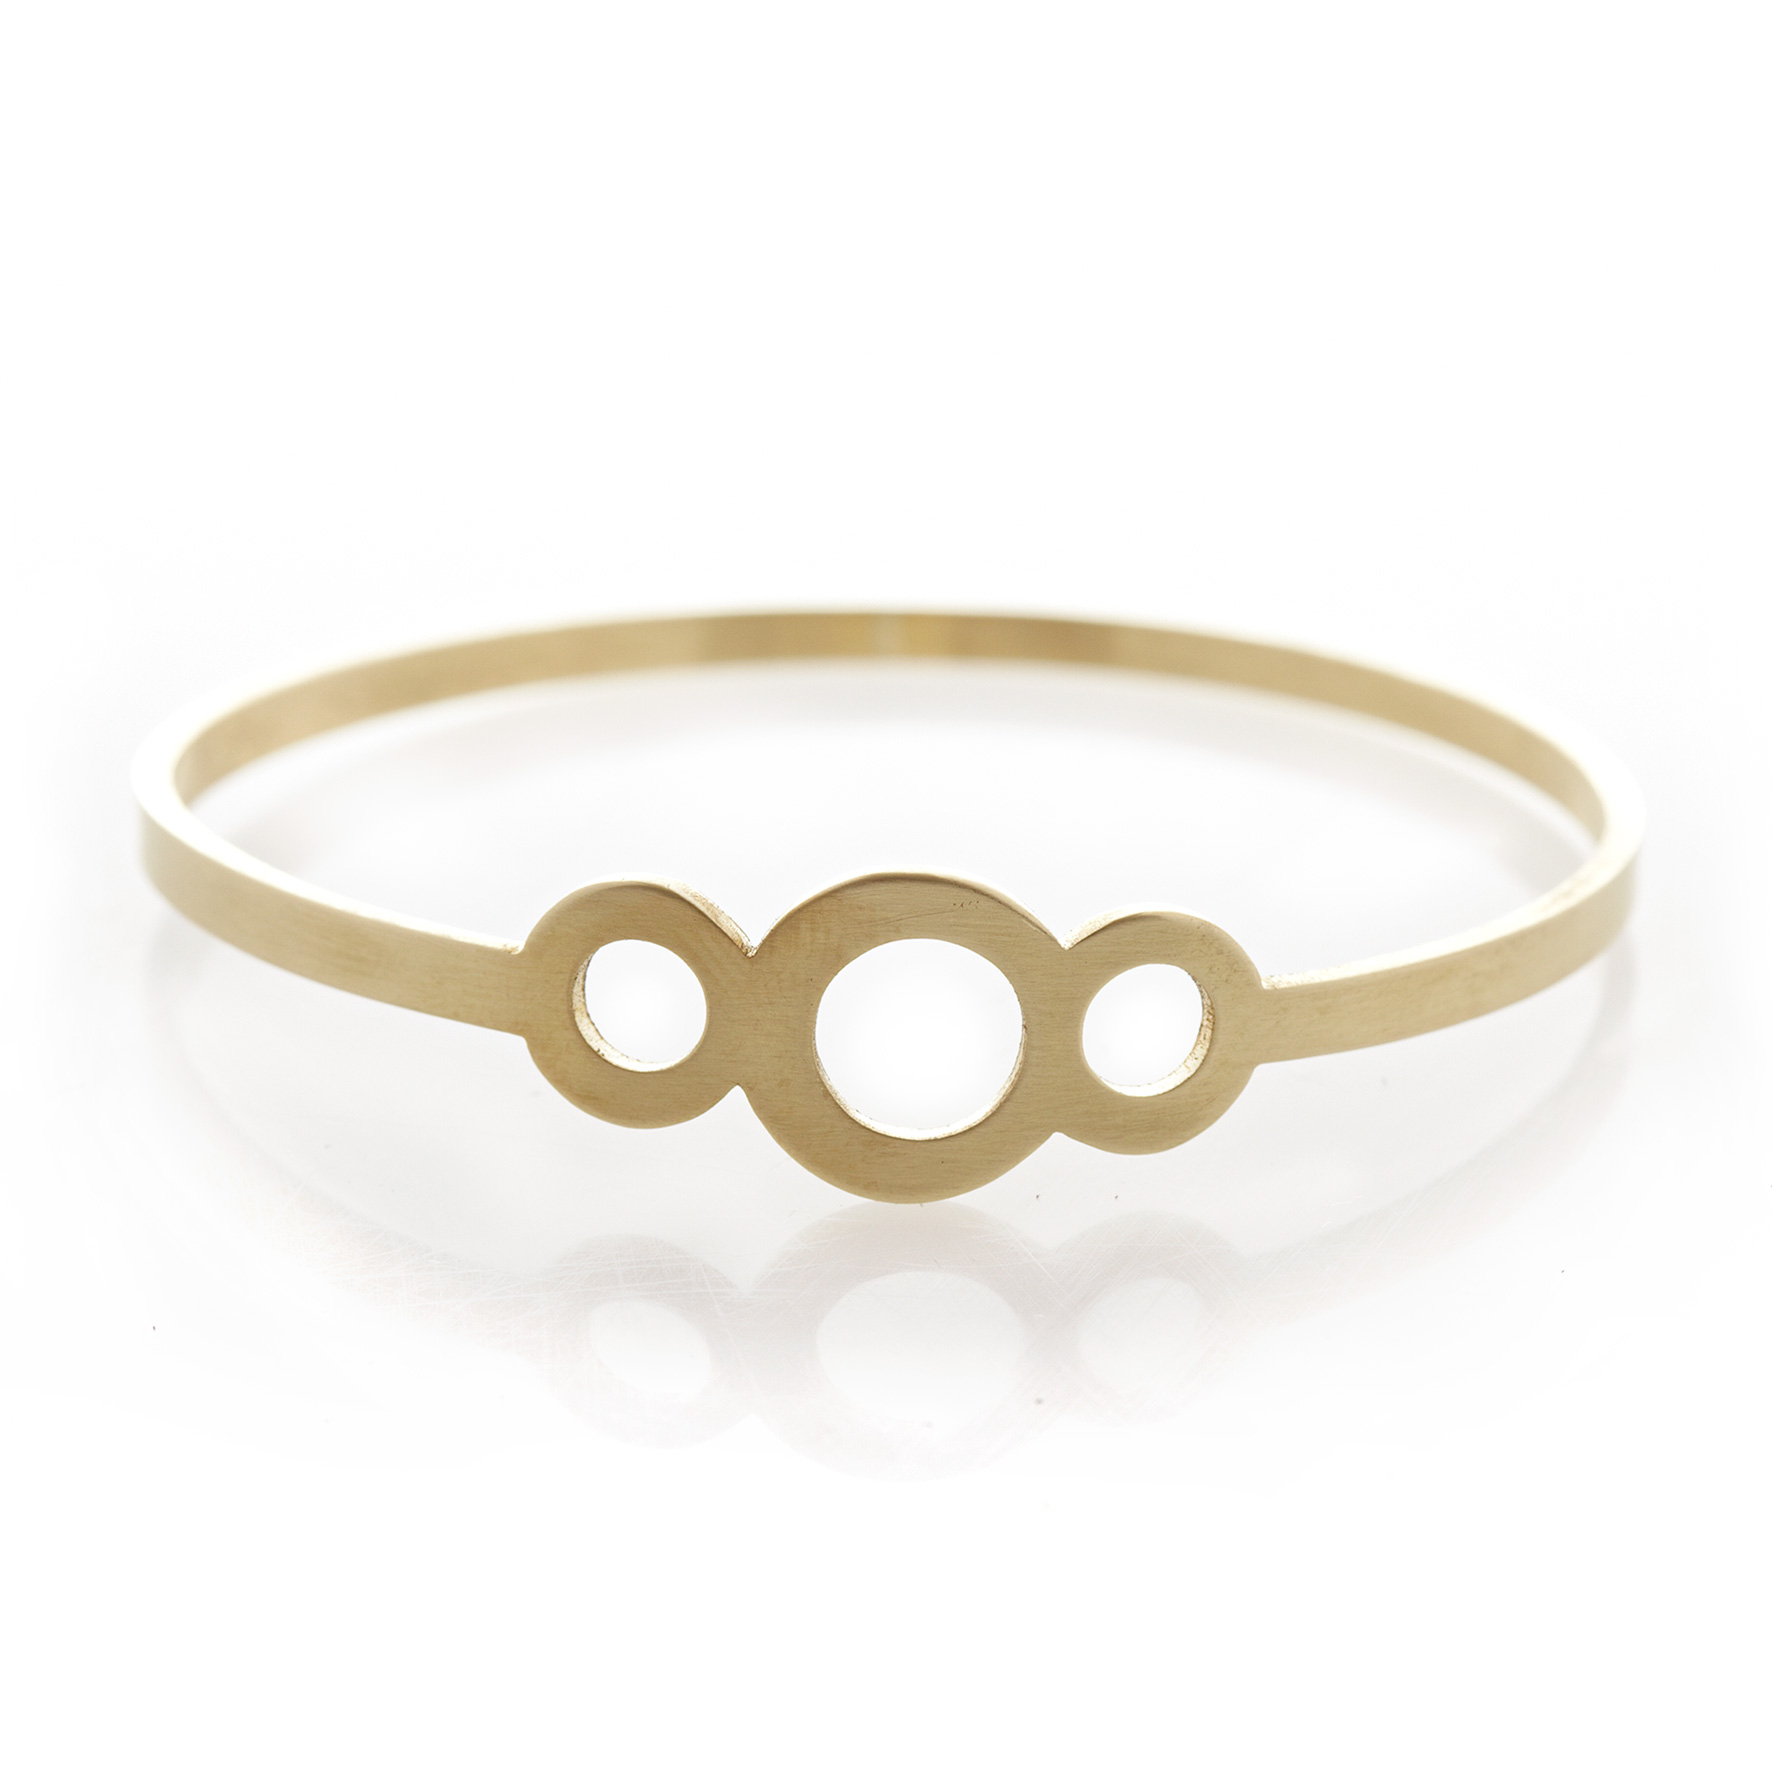 Three circle brass bangle